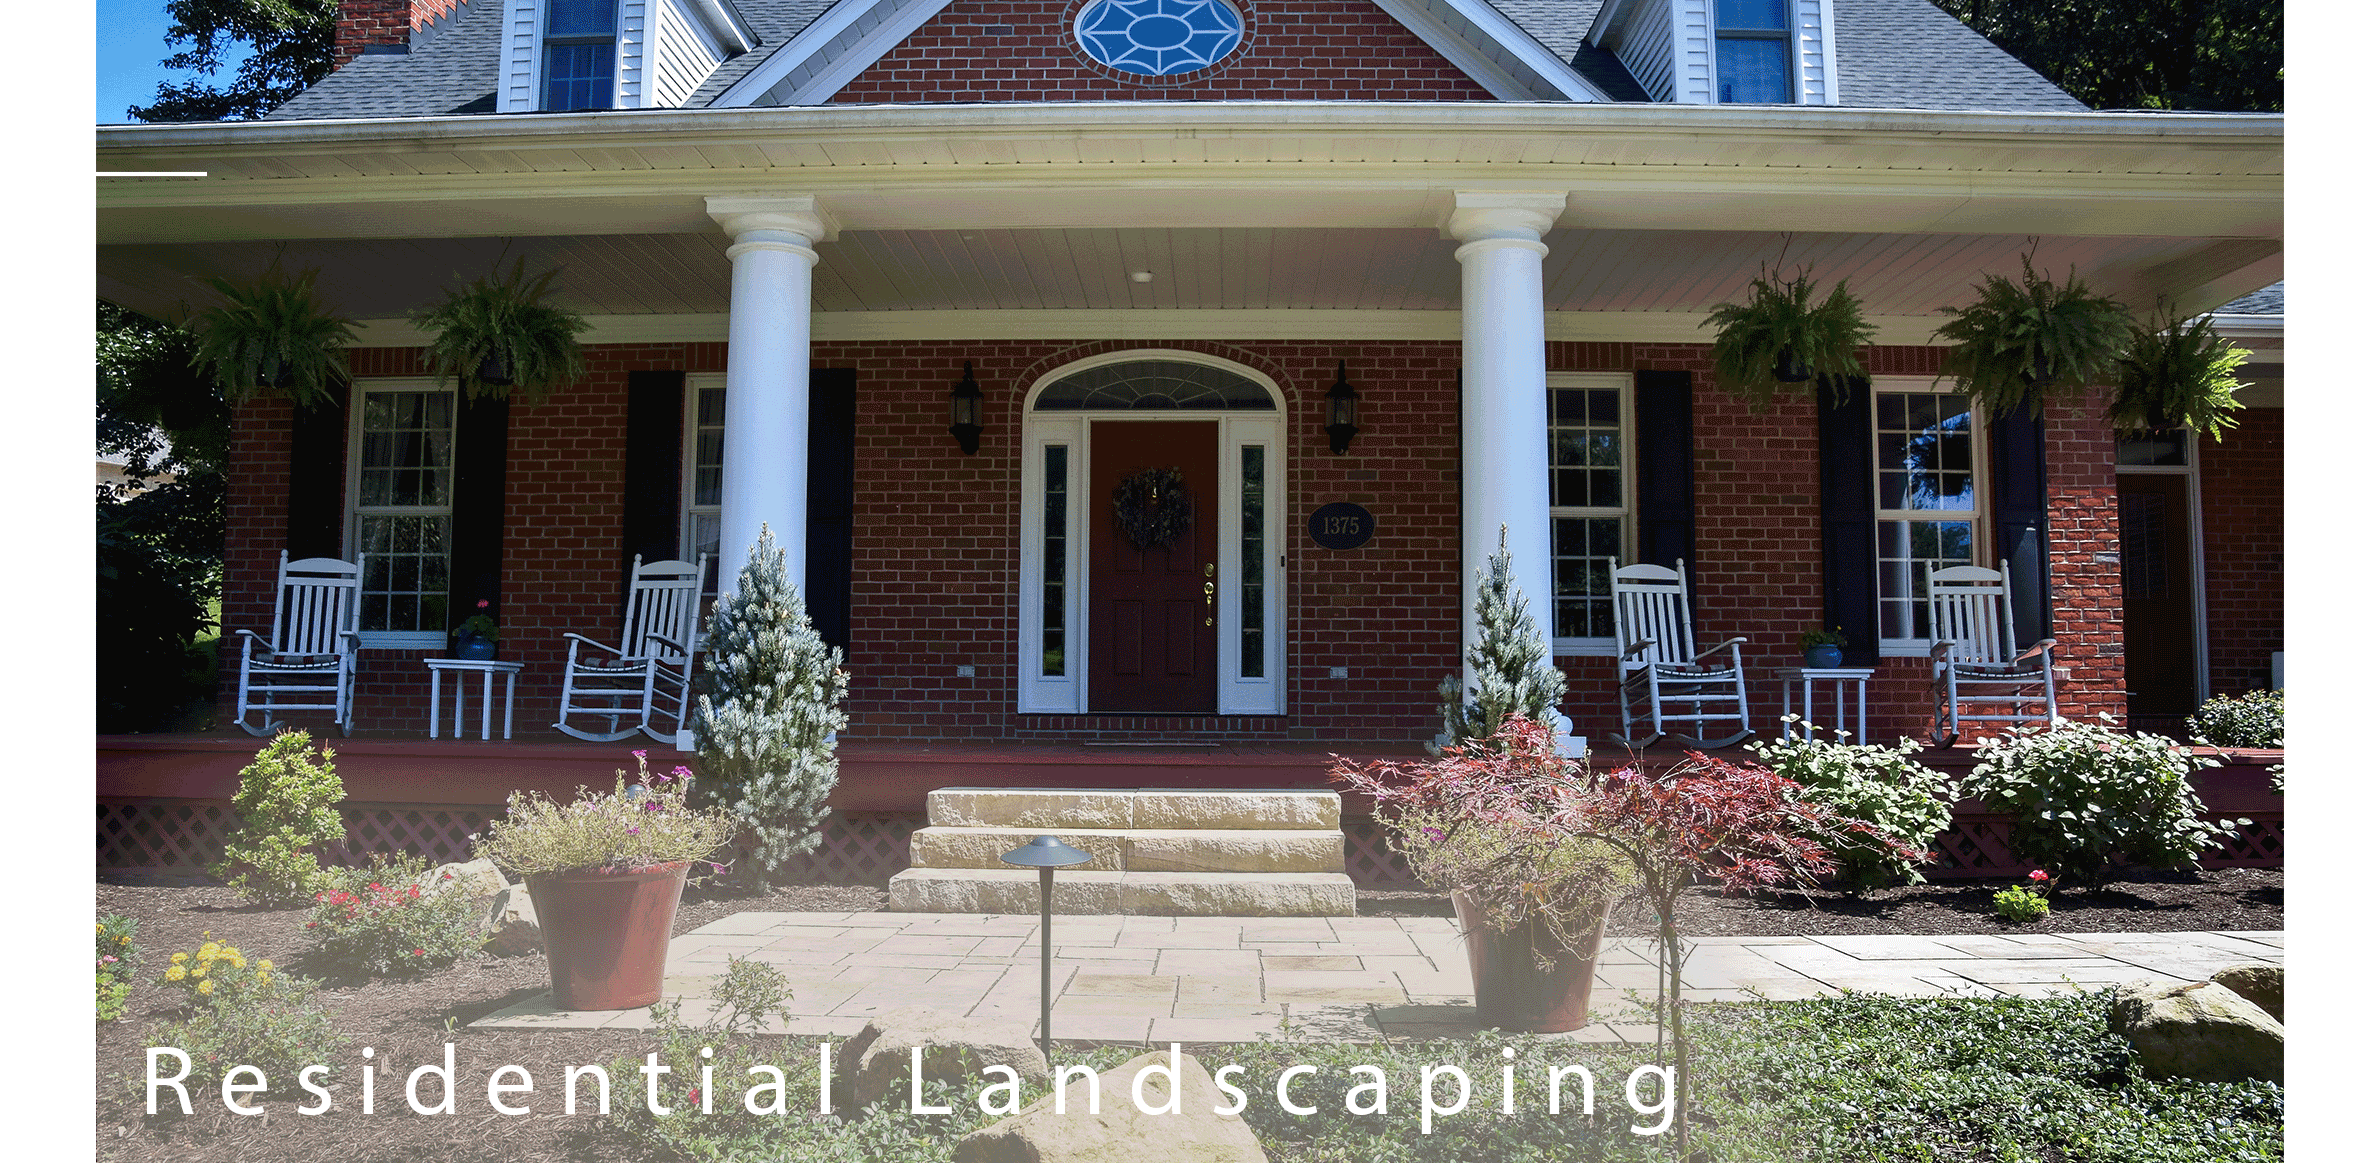 Residential Landscaping by Buckeye Landscapes and Design